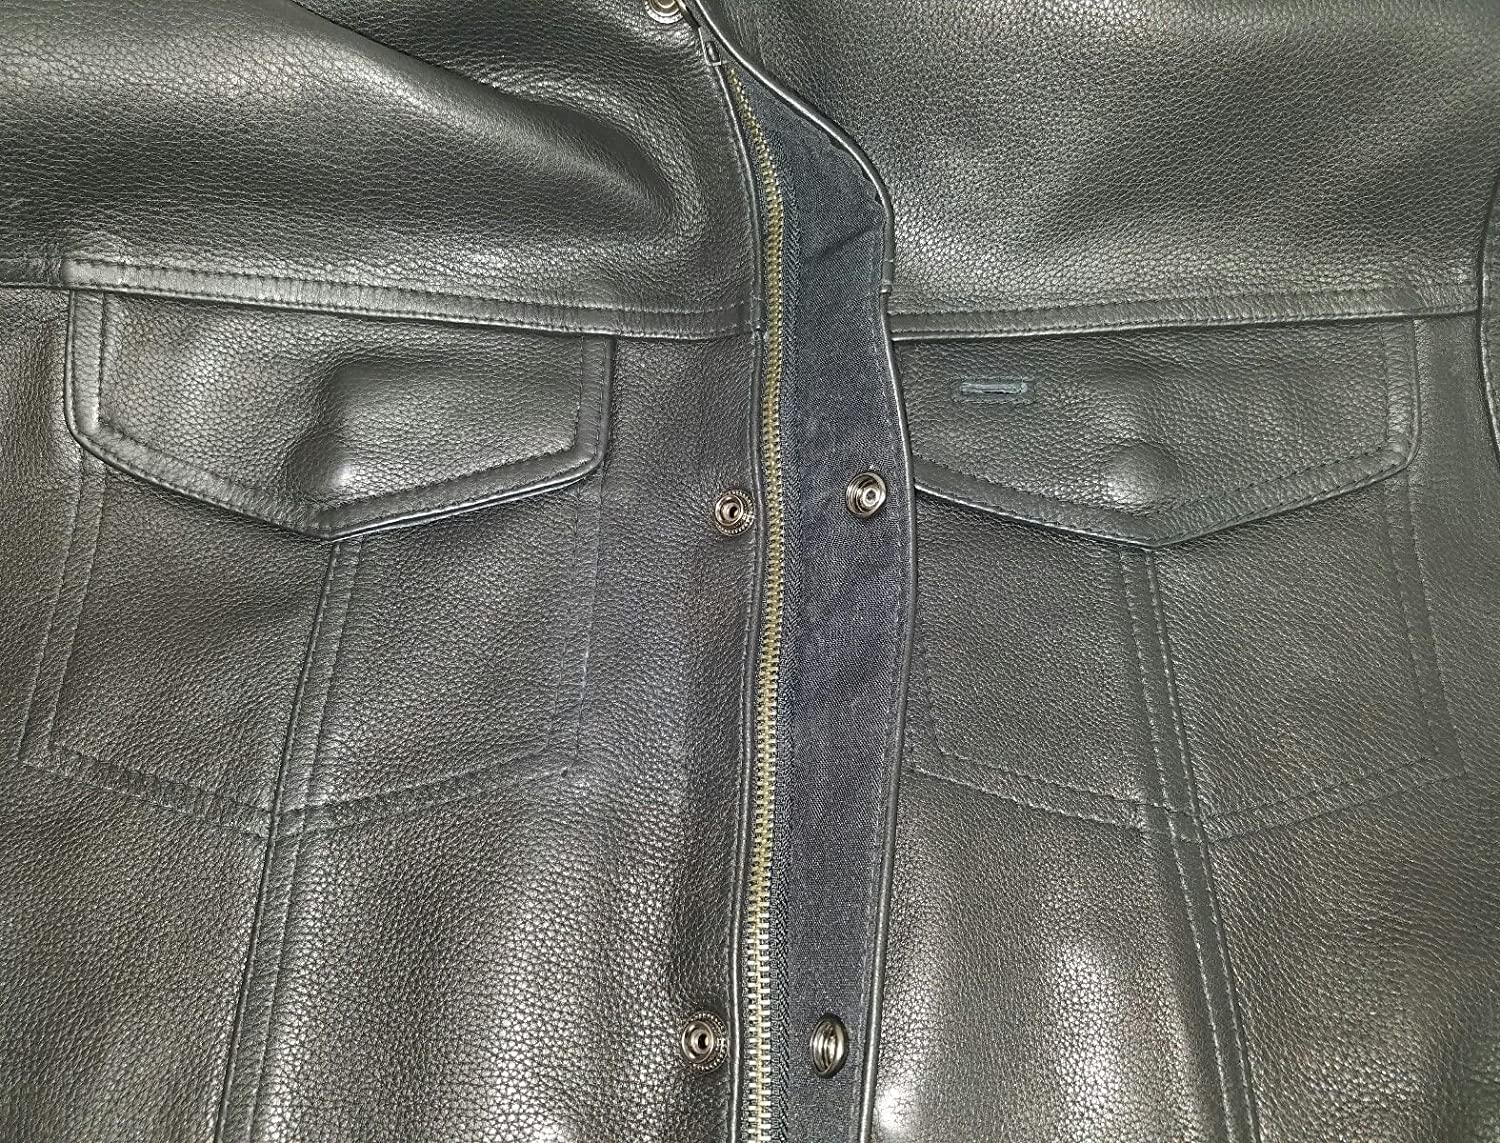 Milwaukee MENS MOTORCYCLE SON OF ANARCHY STYLE BUTTER SOFT LEATHER VEST W//O COLLAR NEW 3XL Regular